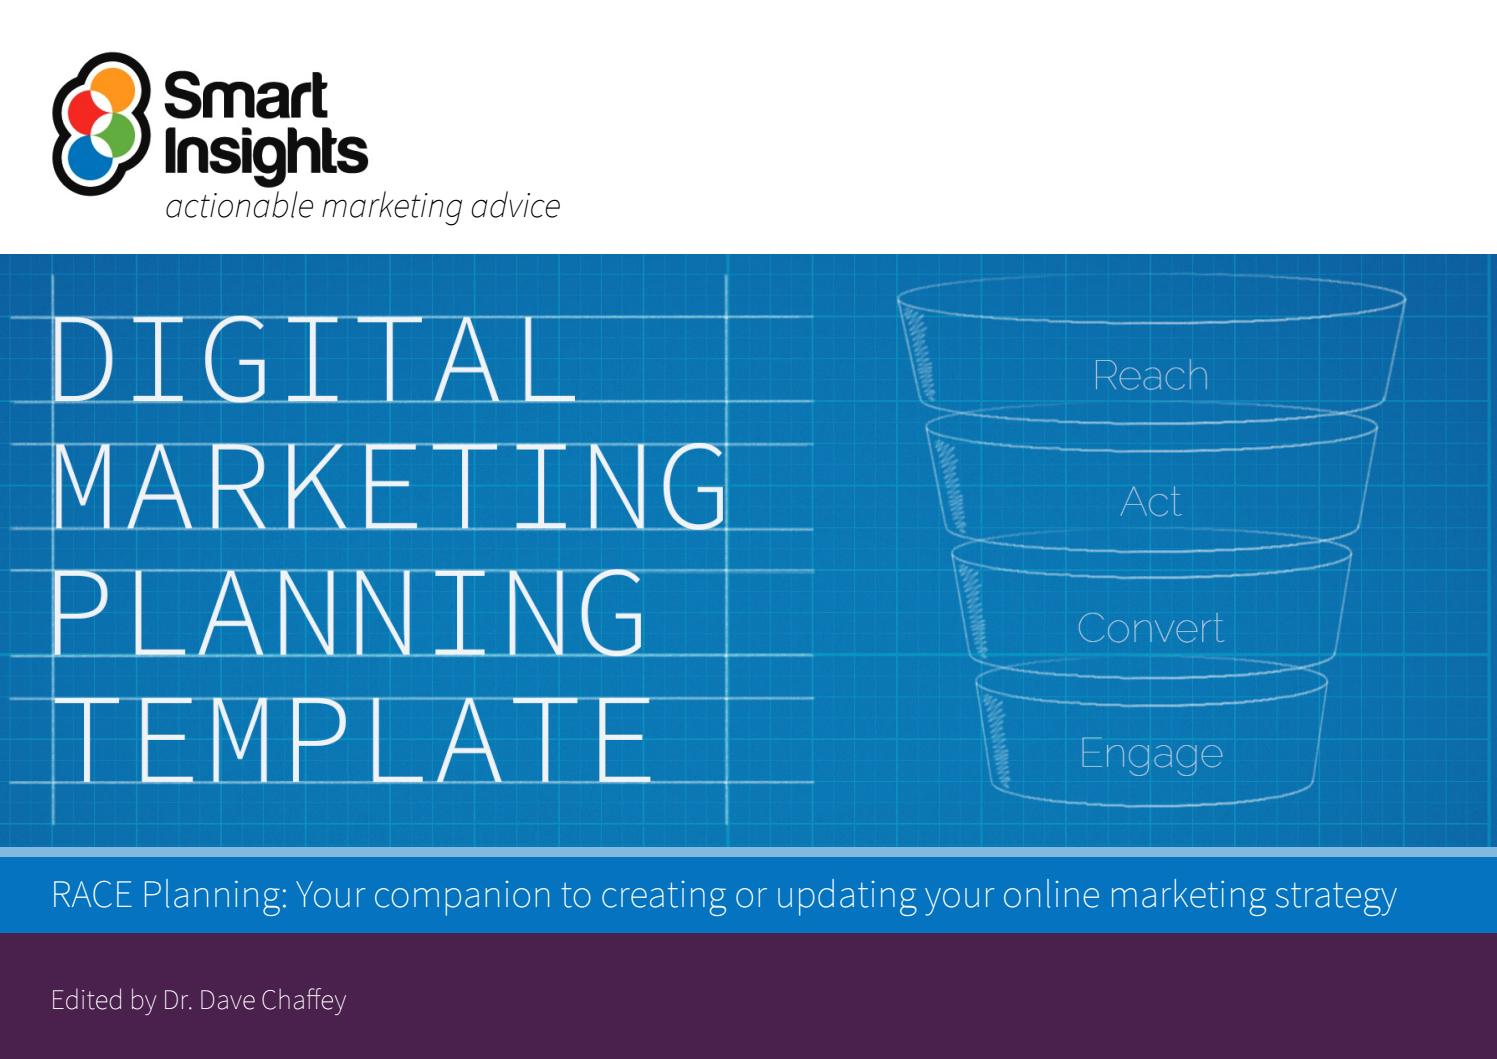 A solid marketing plan is an integral part of the overall business. Digital Marketing Plan Template Smart Insights By Re Schmolze Issuu